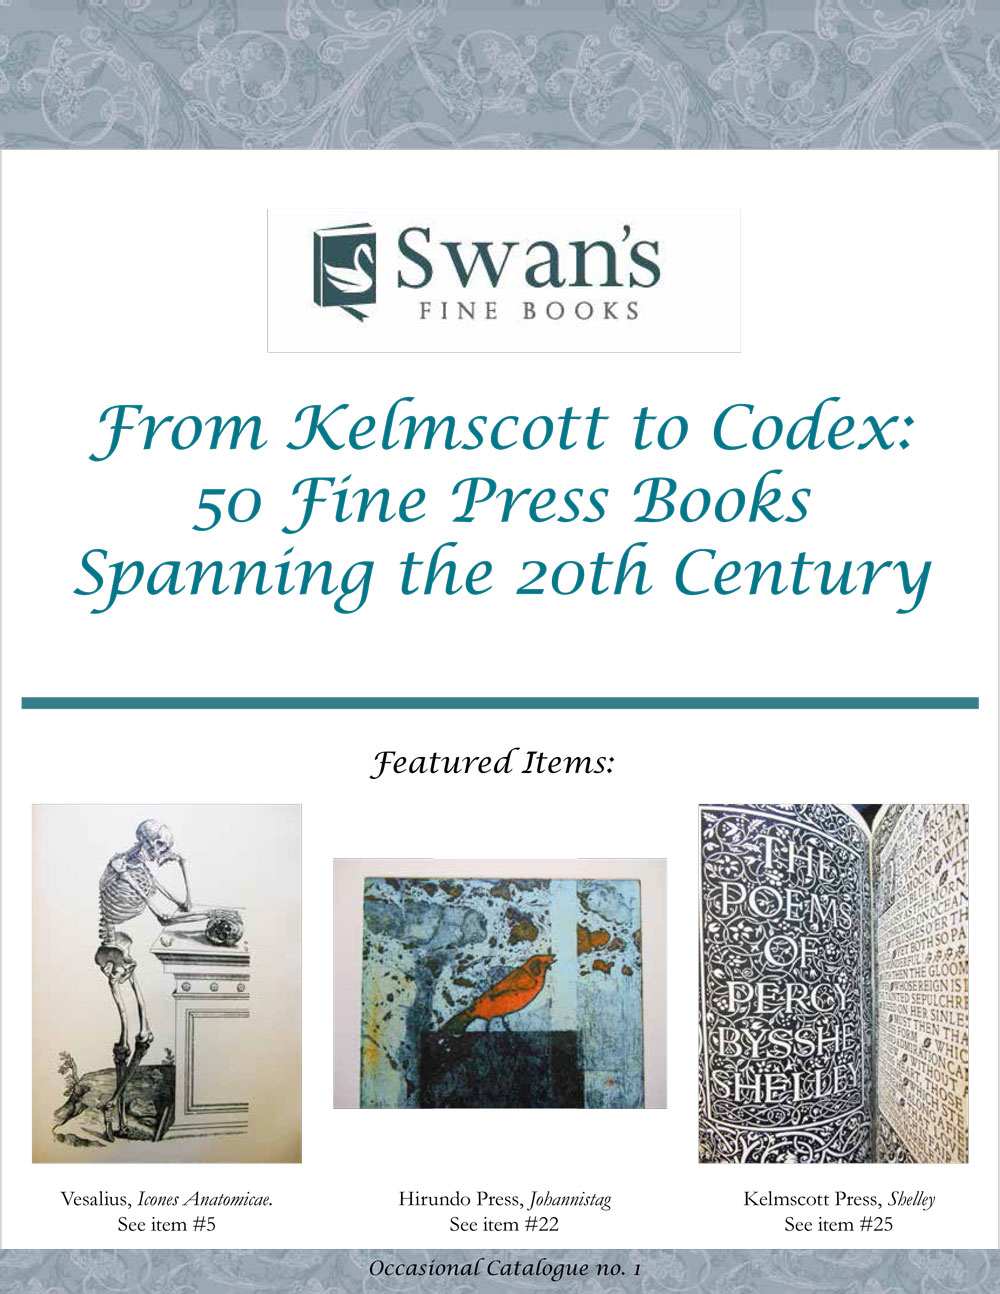 Catalogue 1 – Fine Press Books of the 20th Century